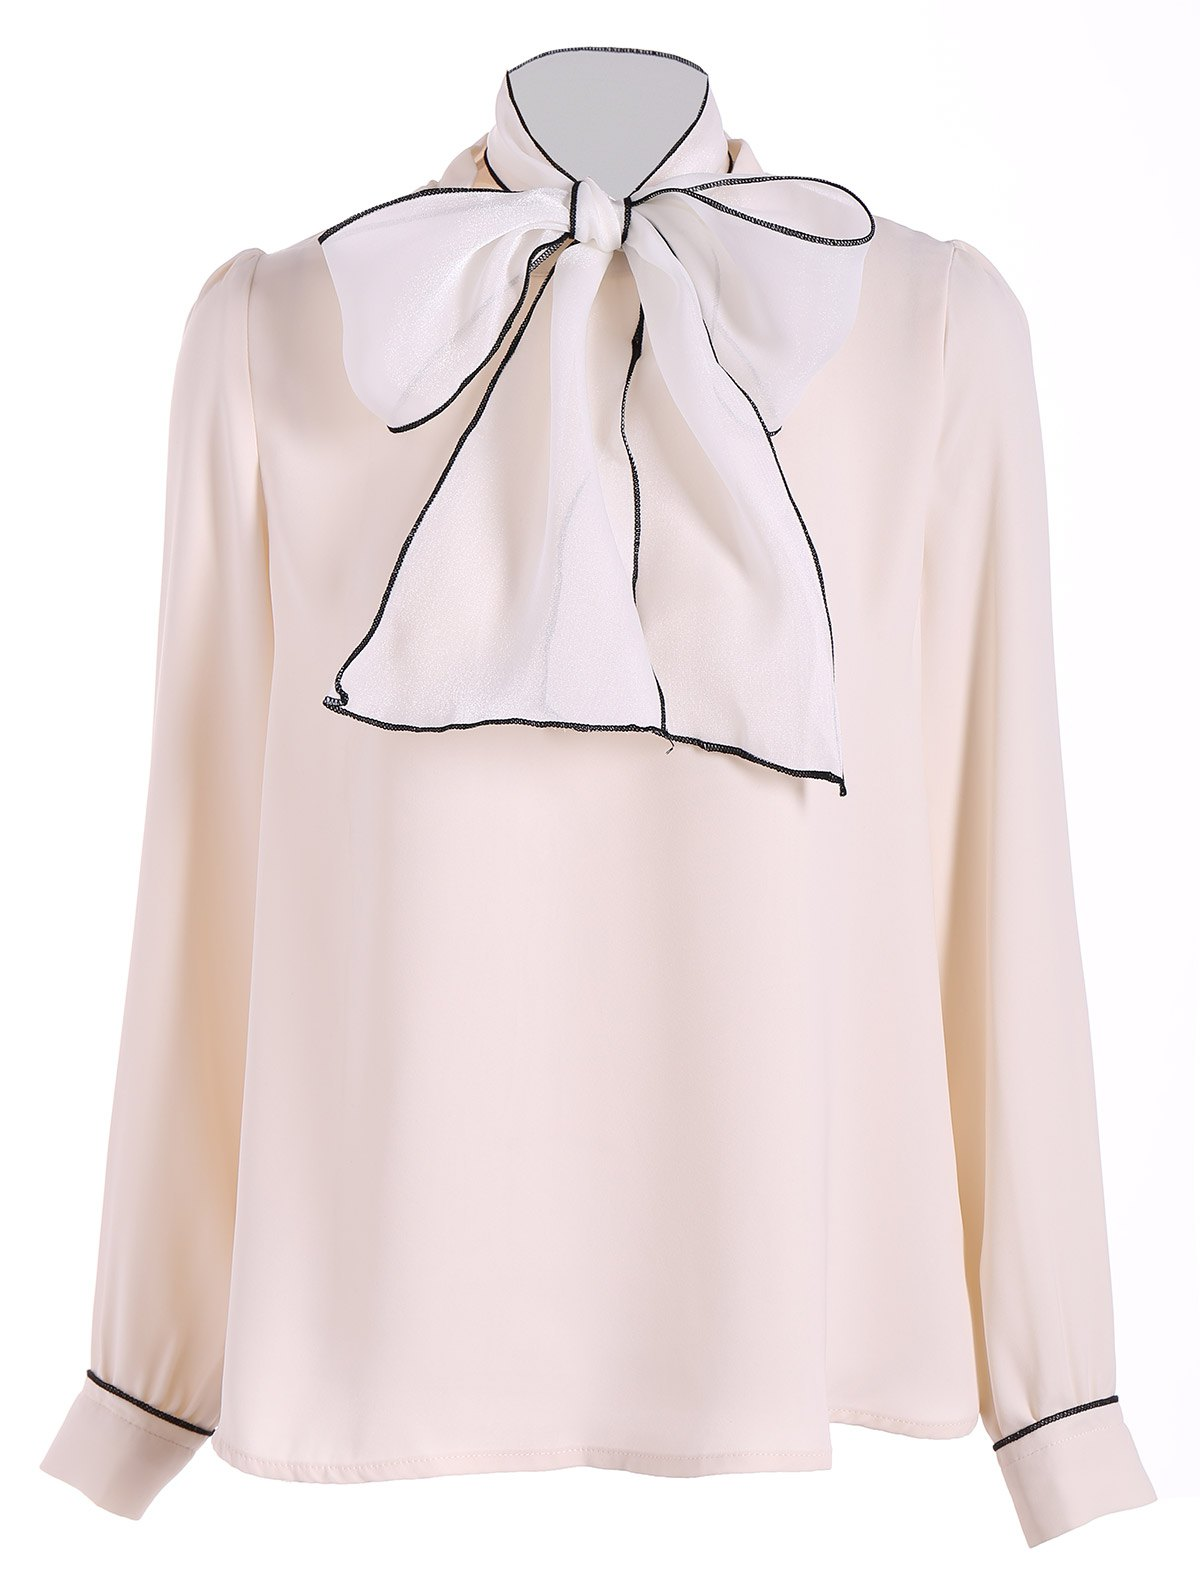 Pussy Bow Tied Neck Chiffon Blouse - APRICOT S